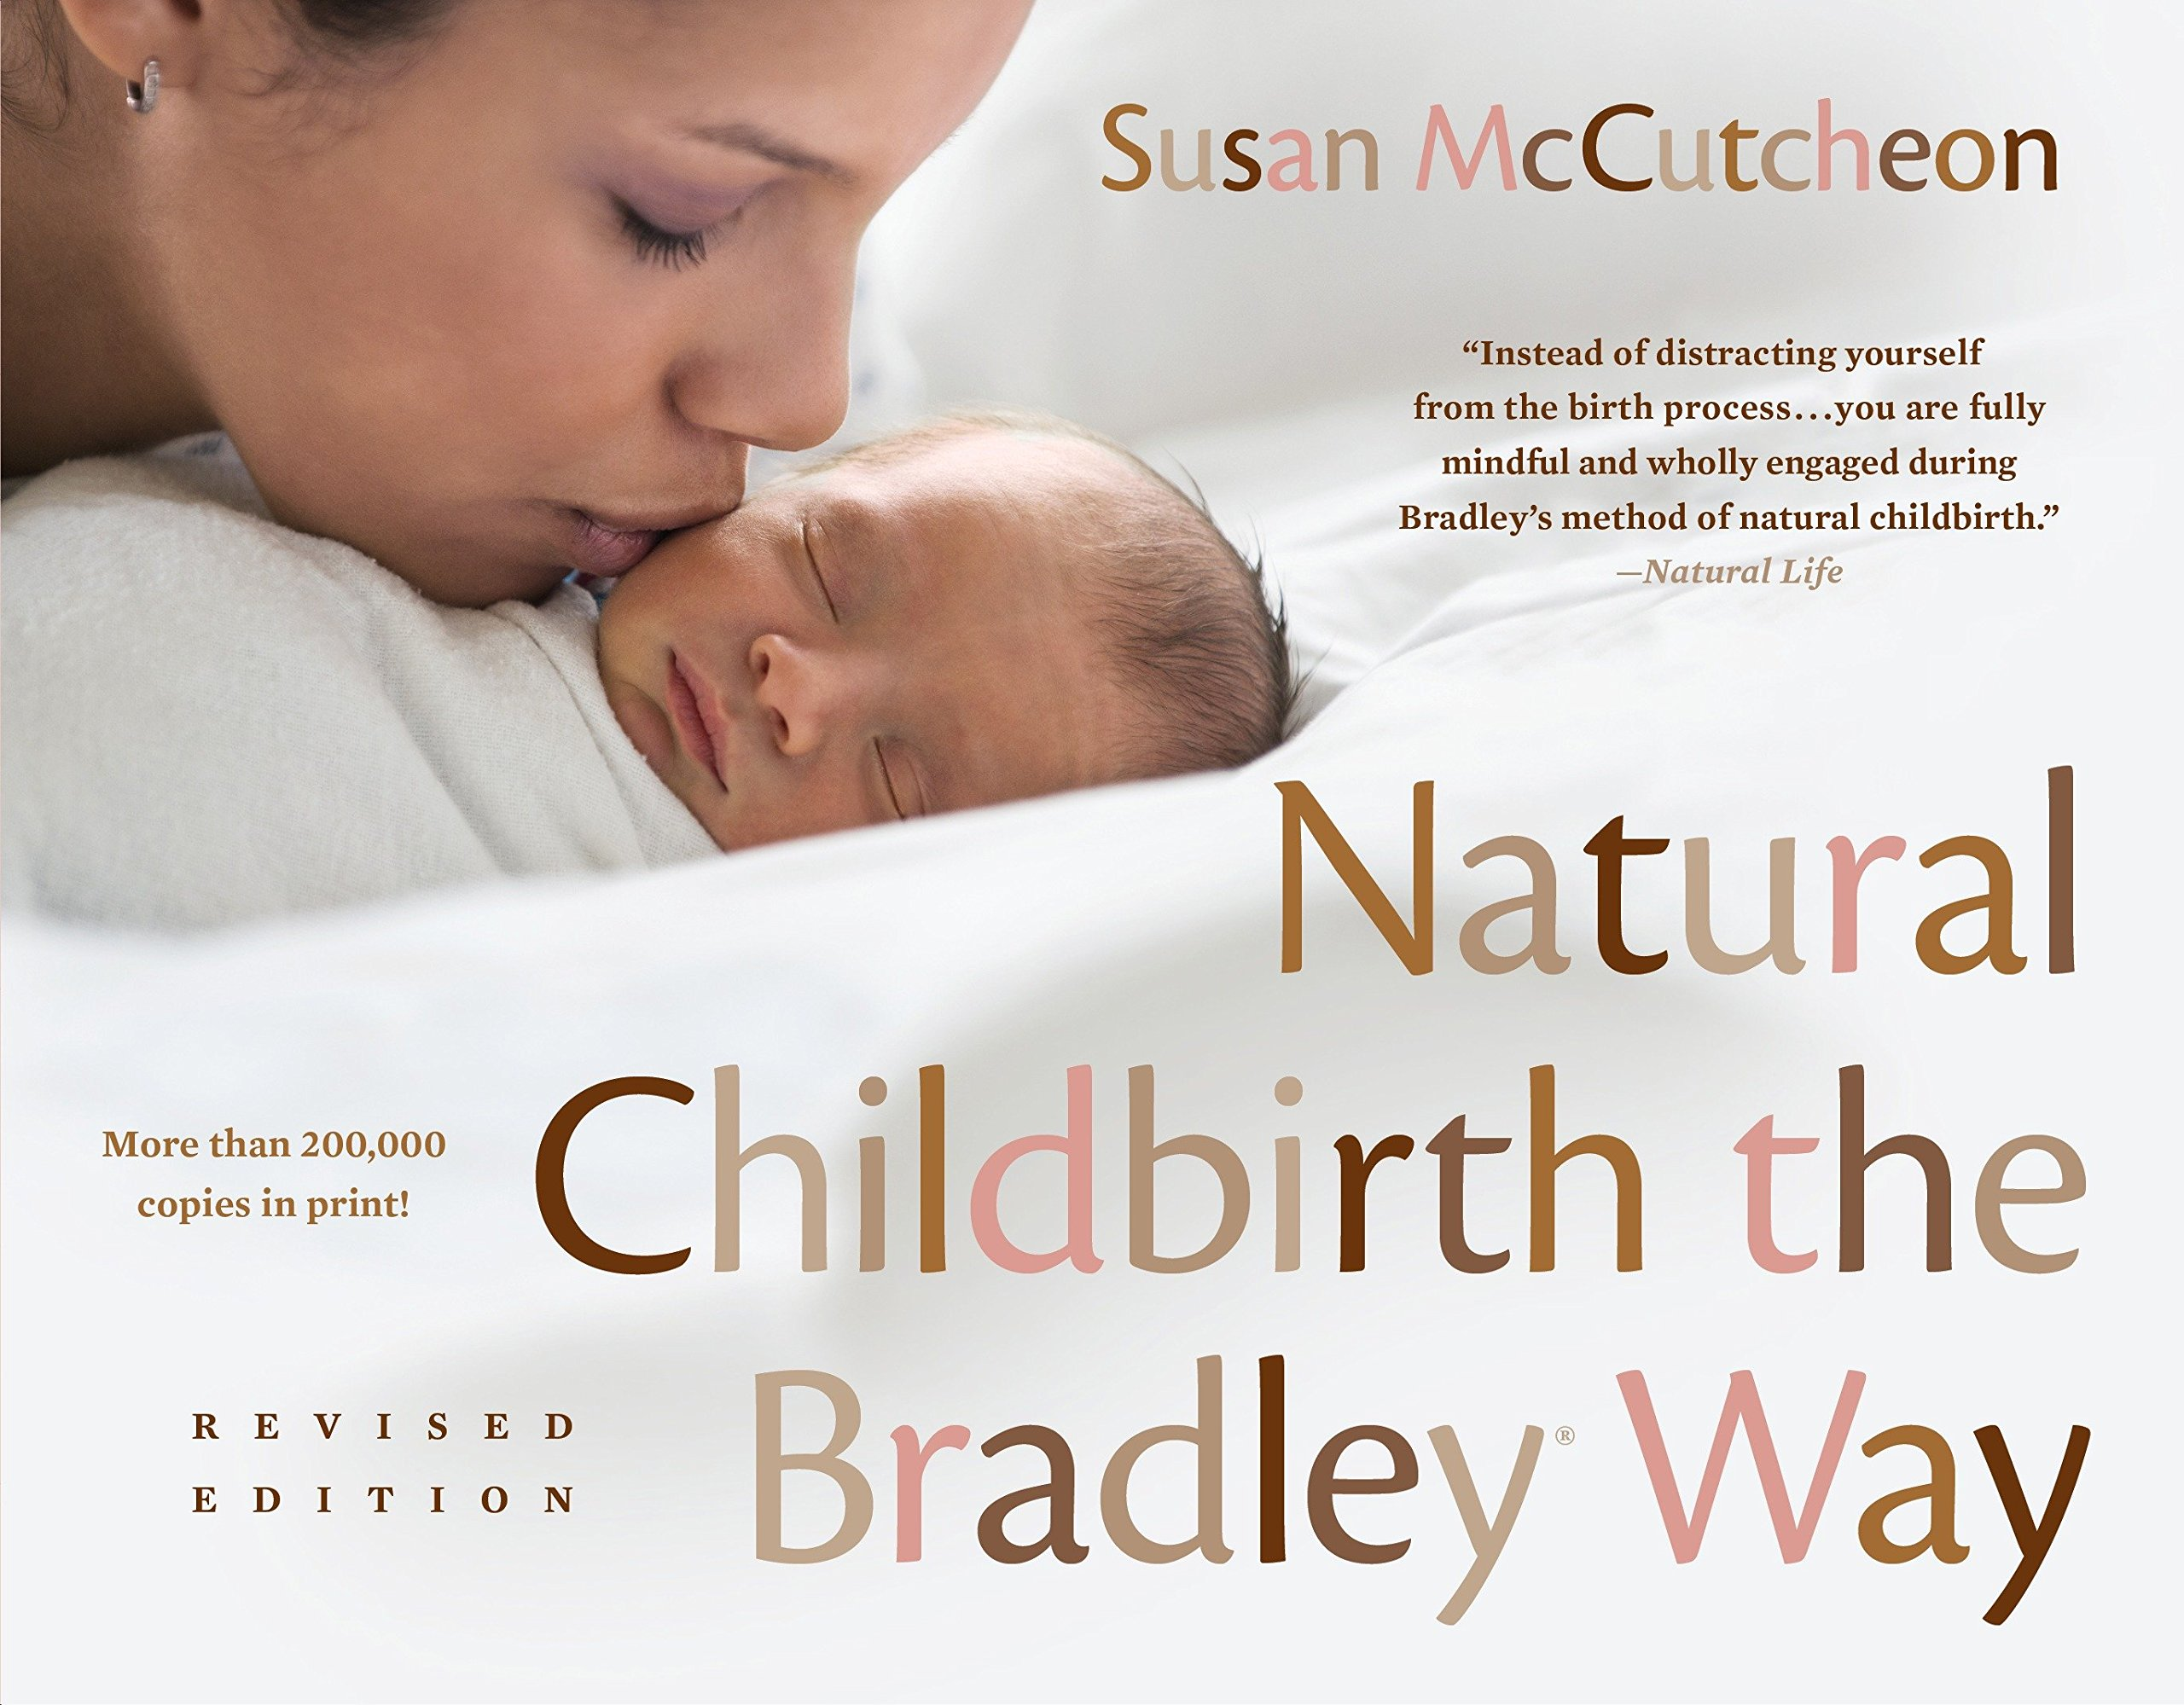 Natural Childbirth the Bradley Way: Revised Edition by Plume